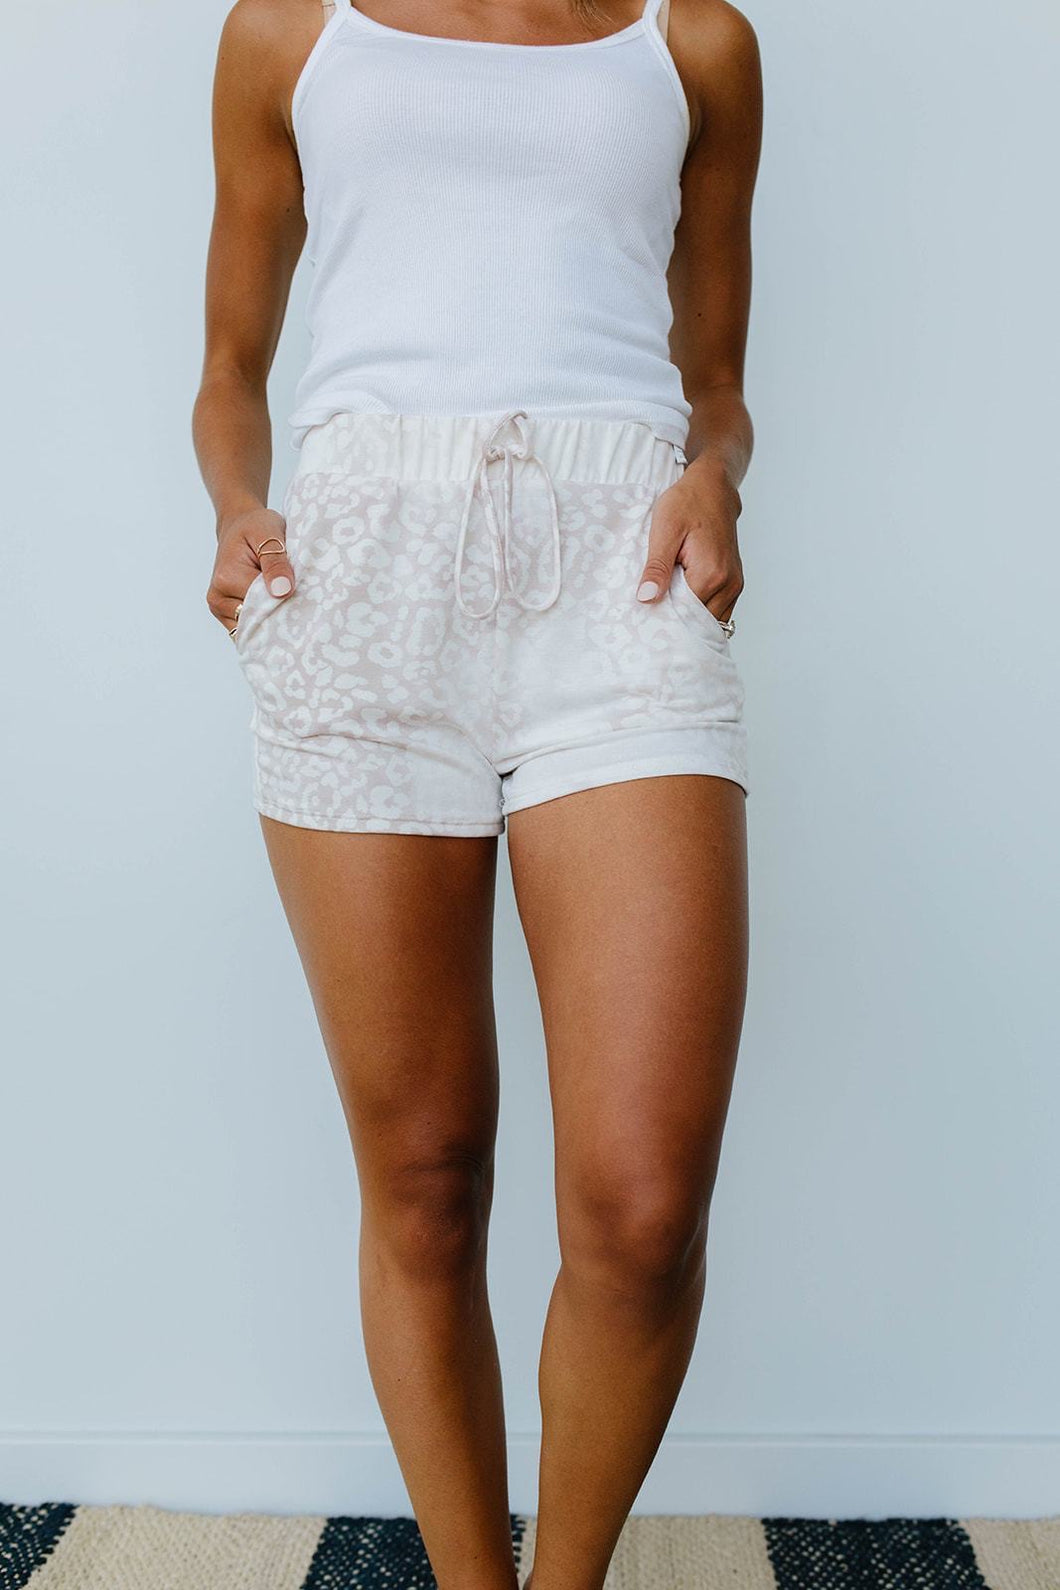 Faded Taupe Shorts - SAMPLE - Smith & Vena Online Boutique